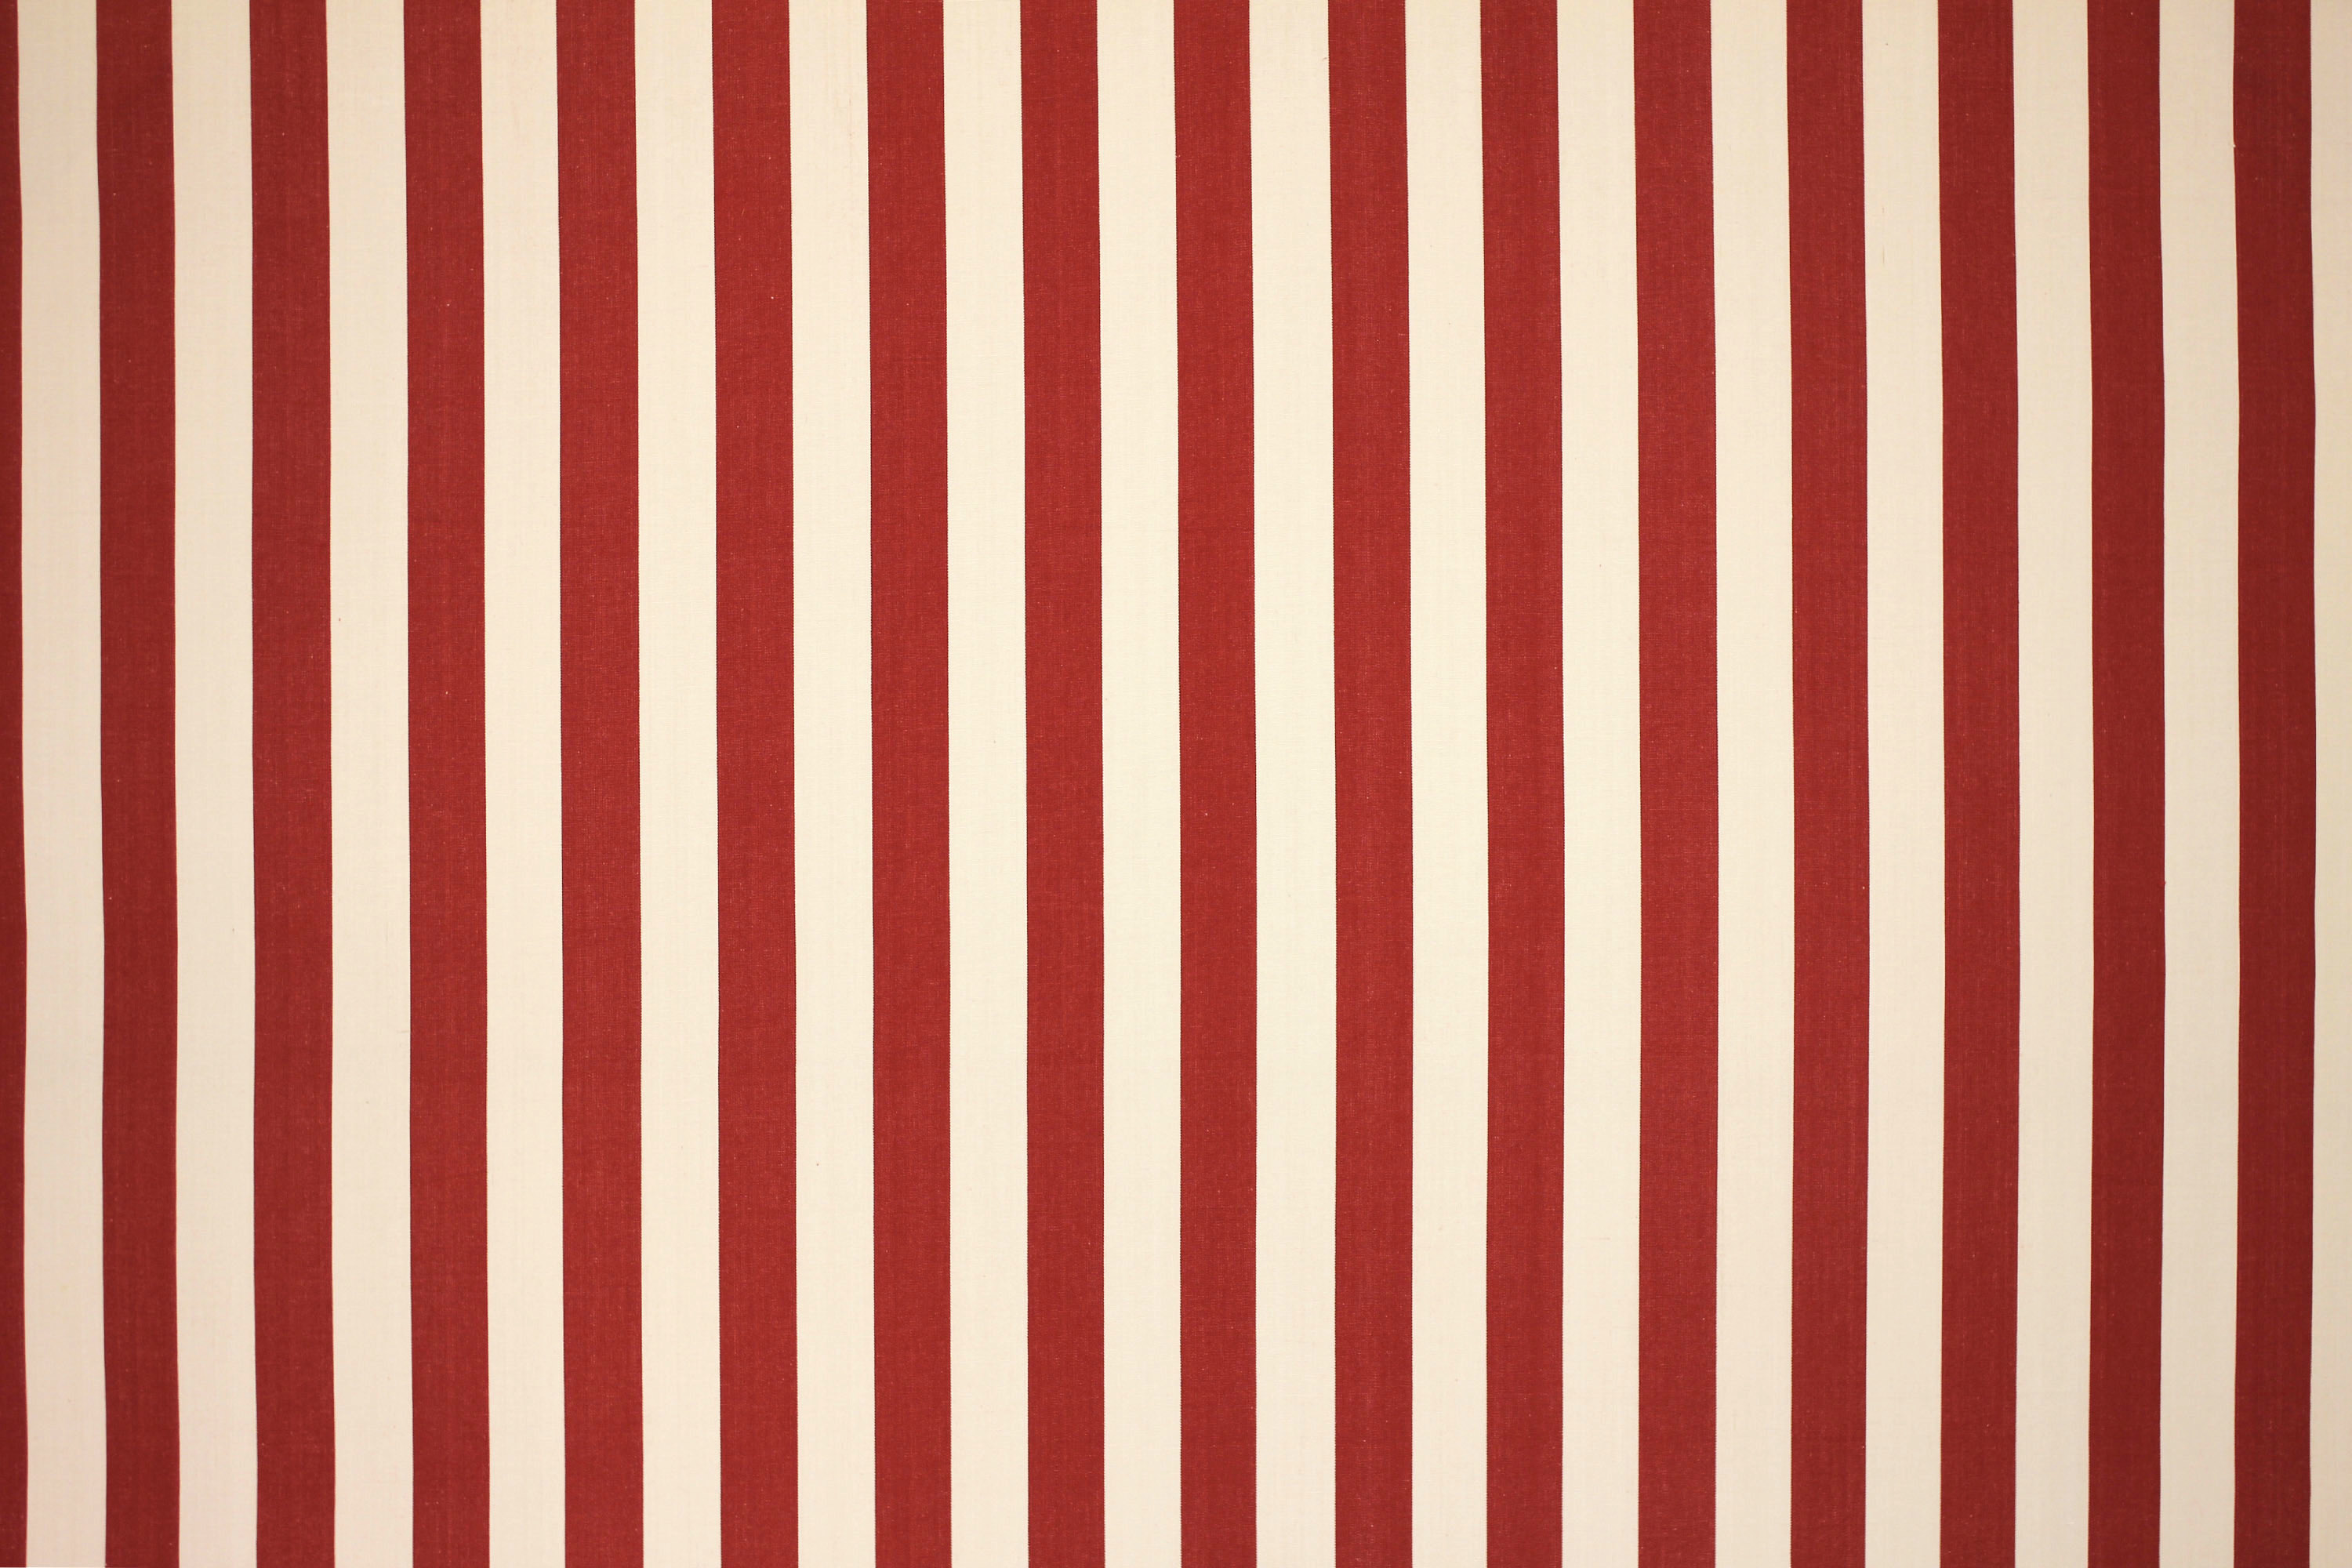 Red and White Striped Fabrics